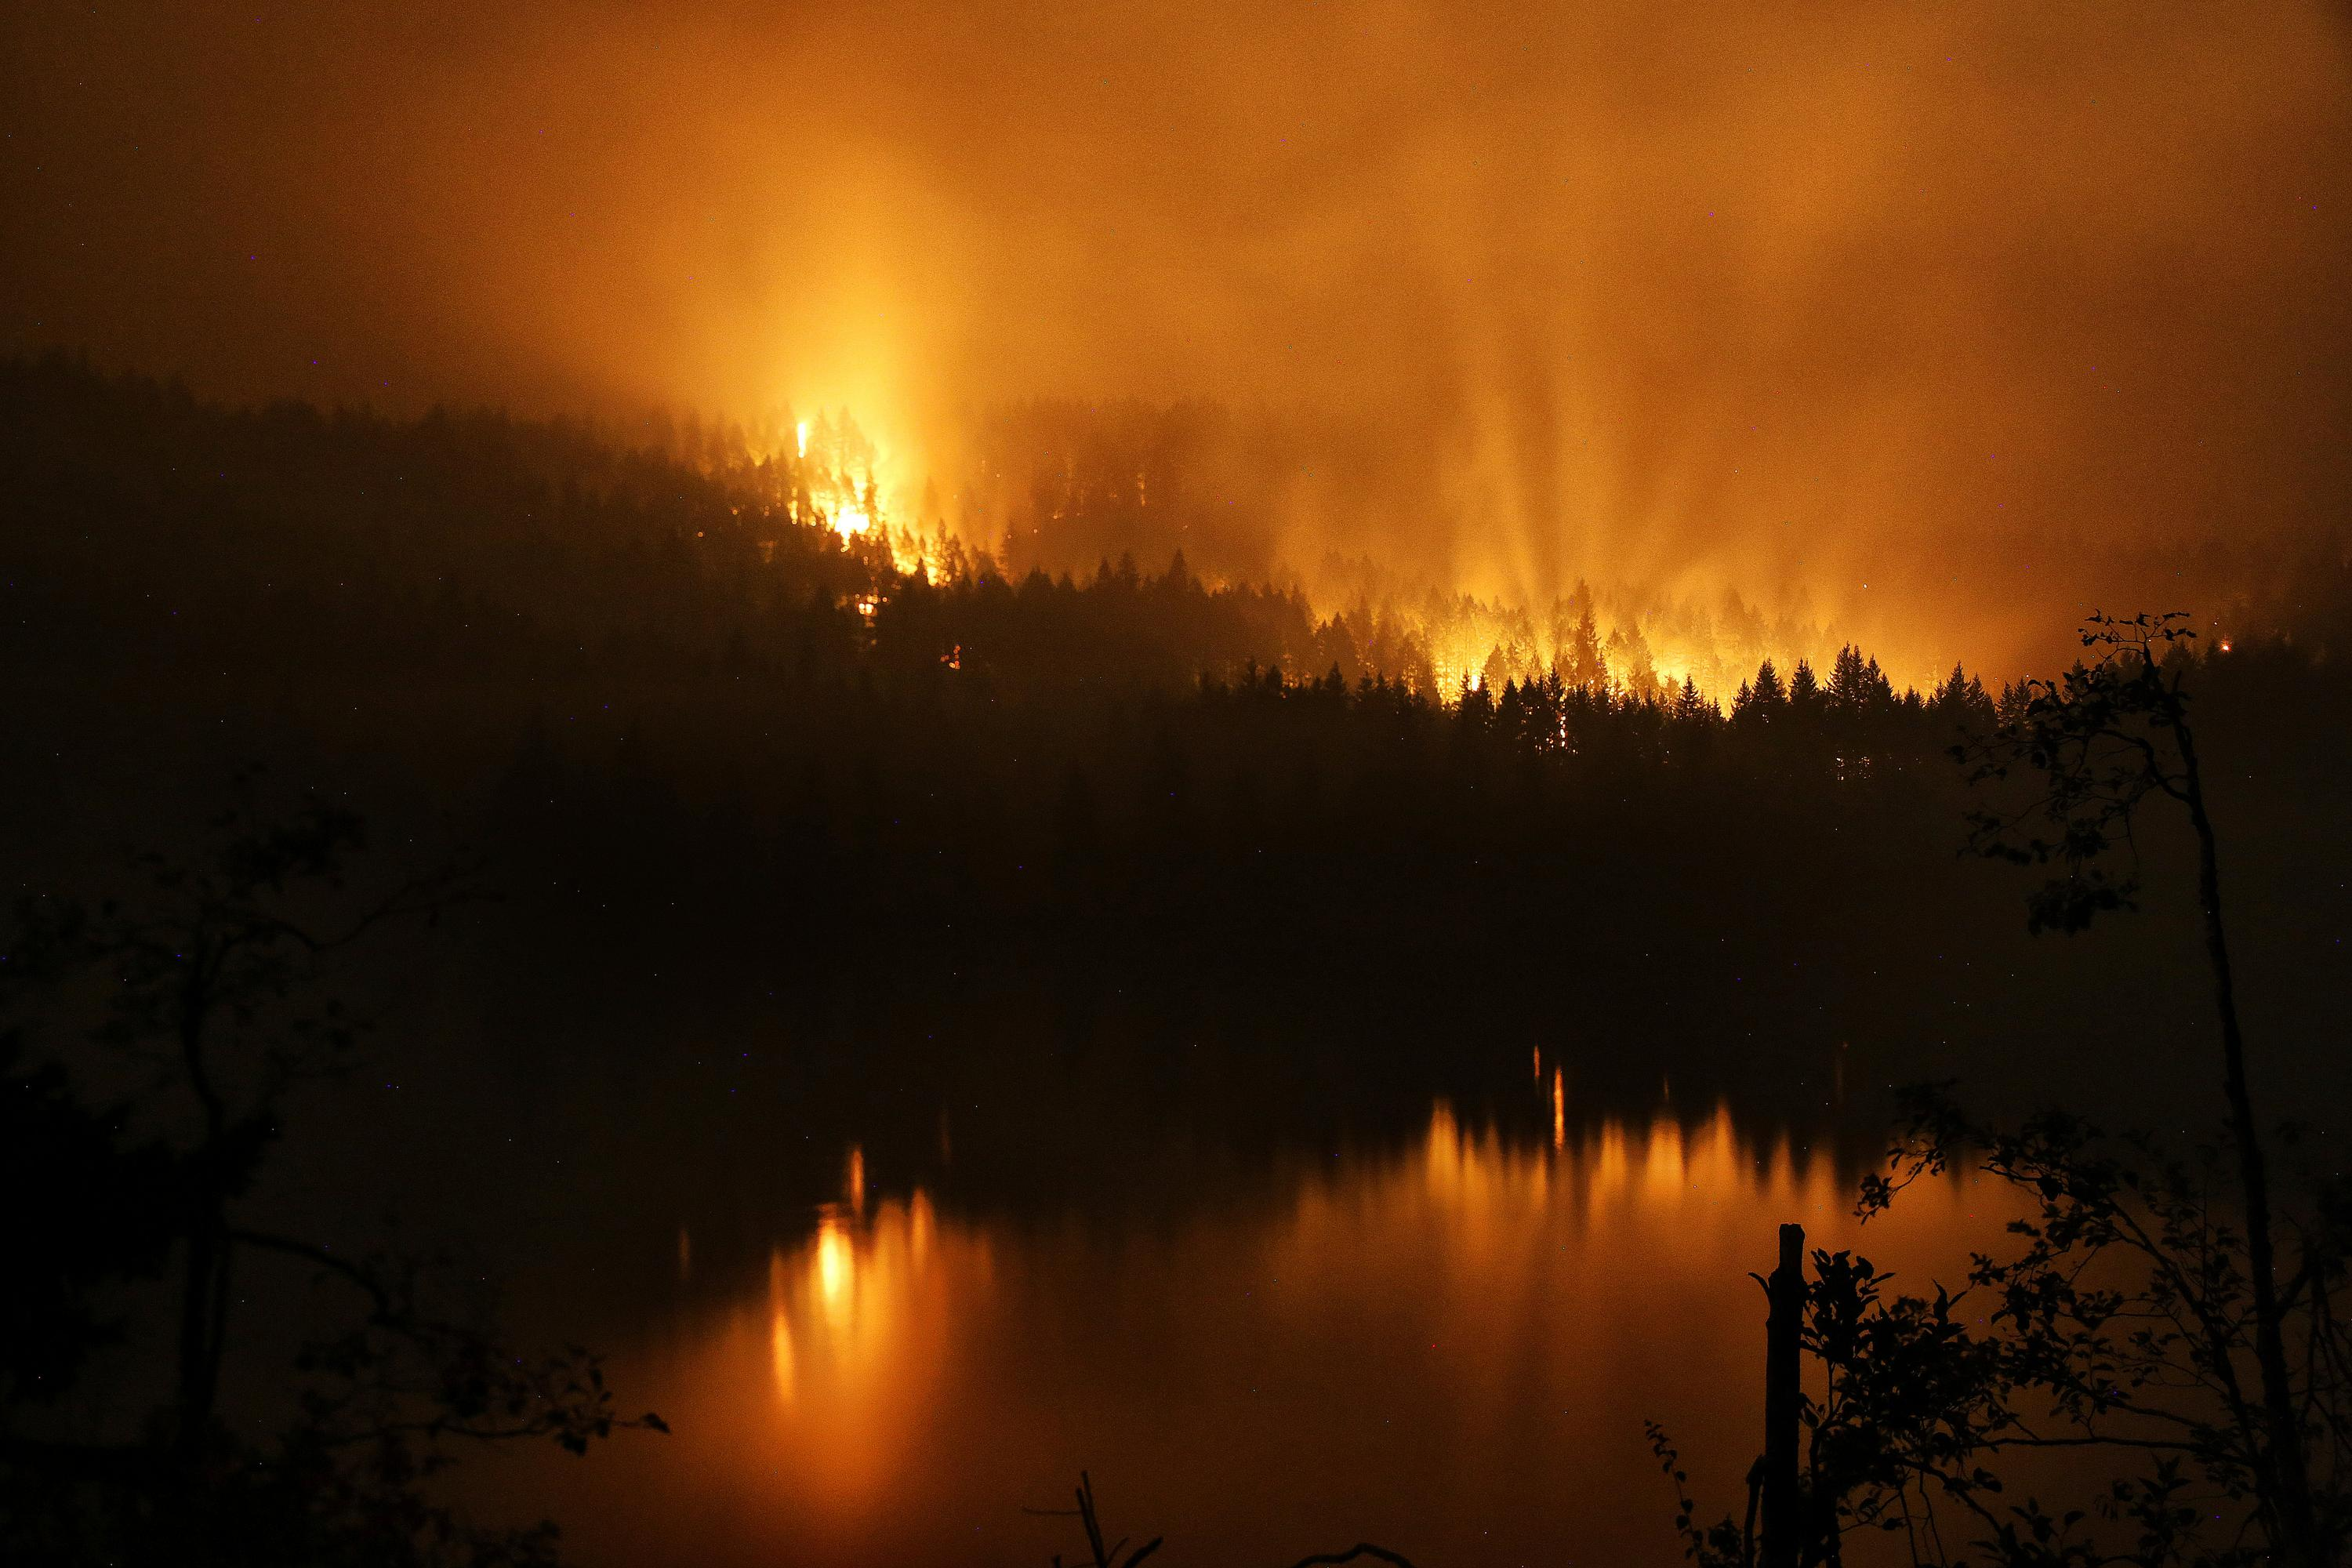 A wildfire continues to burn on the Oregon side of the Columbia River Gorge near Cascade Locks, Ore., and the Bridge of the Gods, late Tuesday, Sept. 5, 2017. (Genna Martin/seattlepi.com via AP)